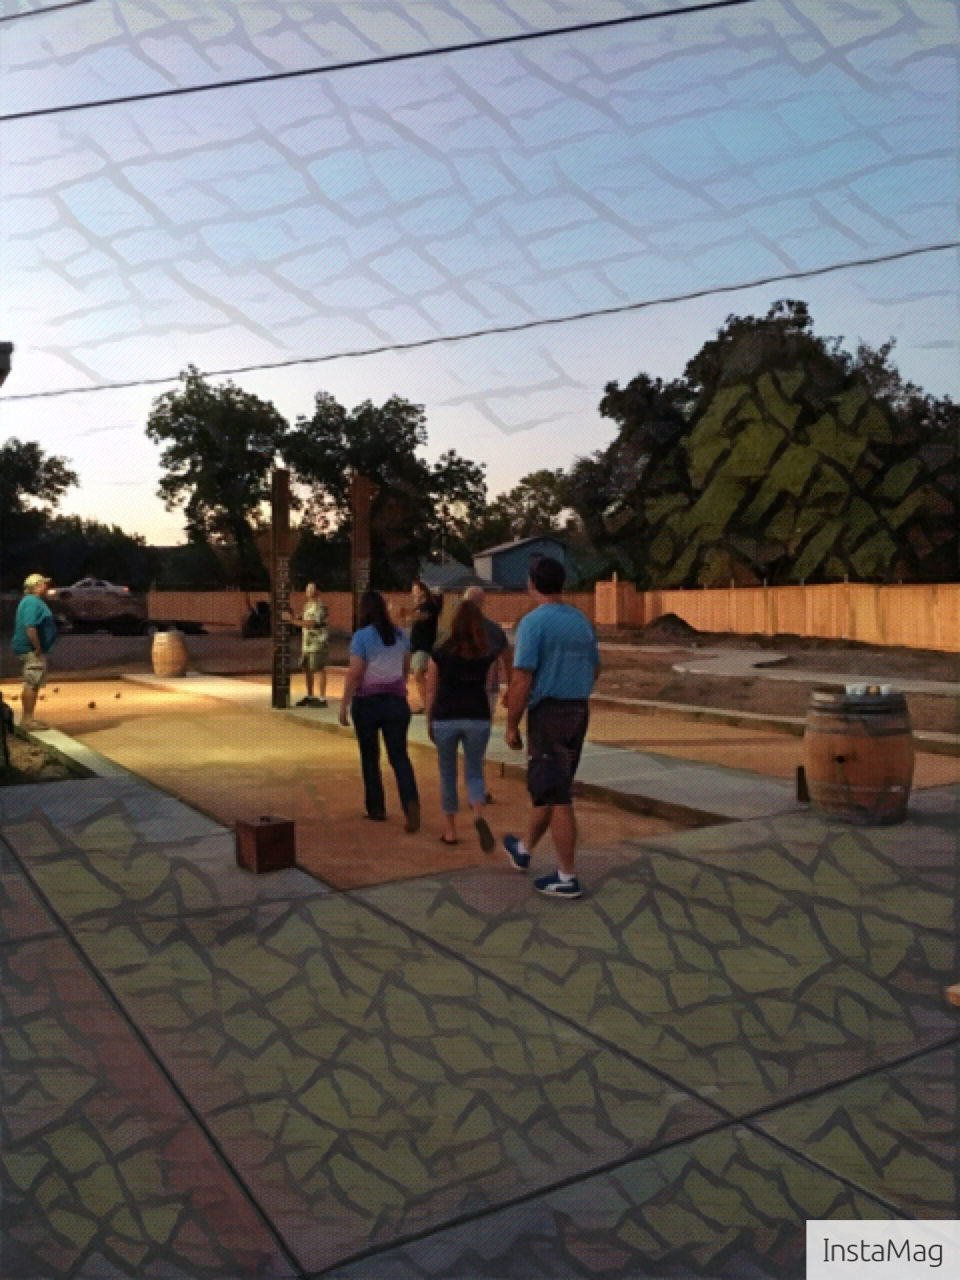 Bocce Ball Courts day and night